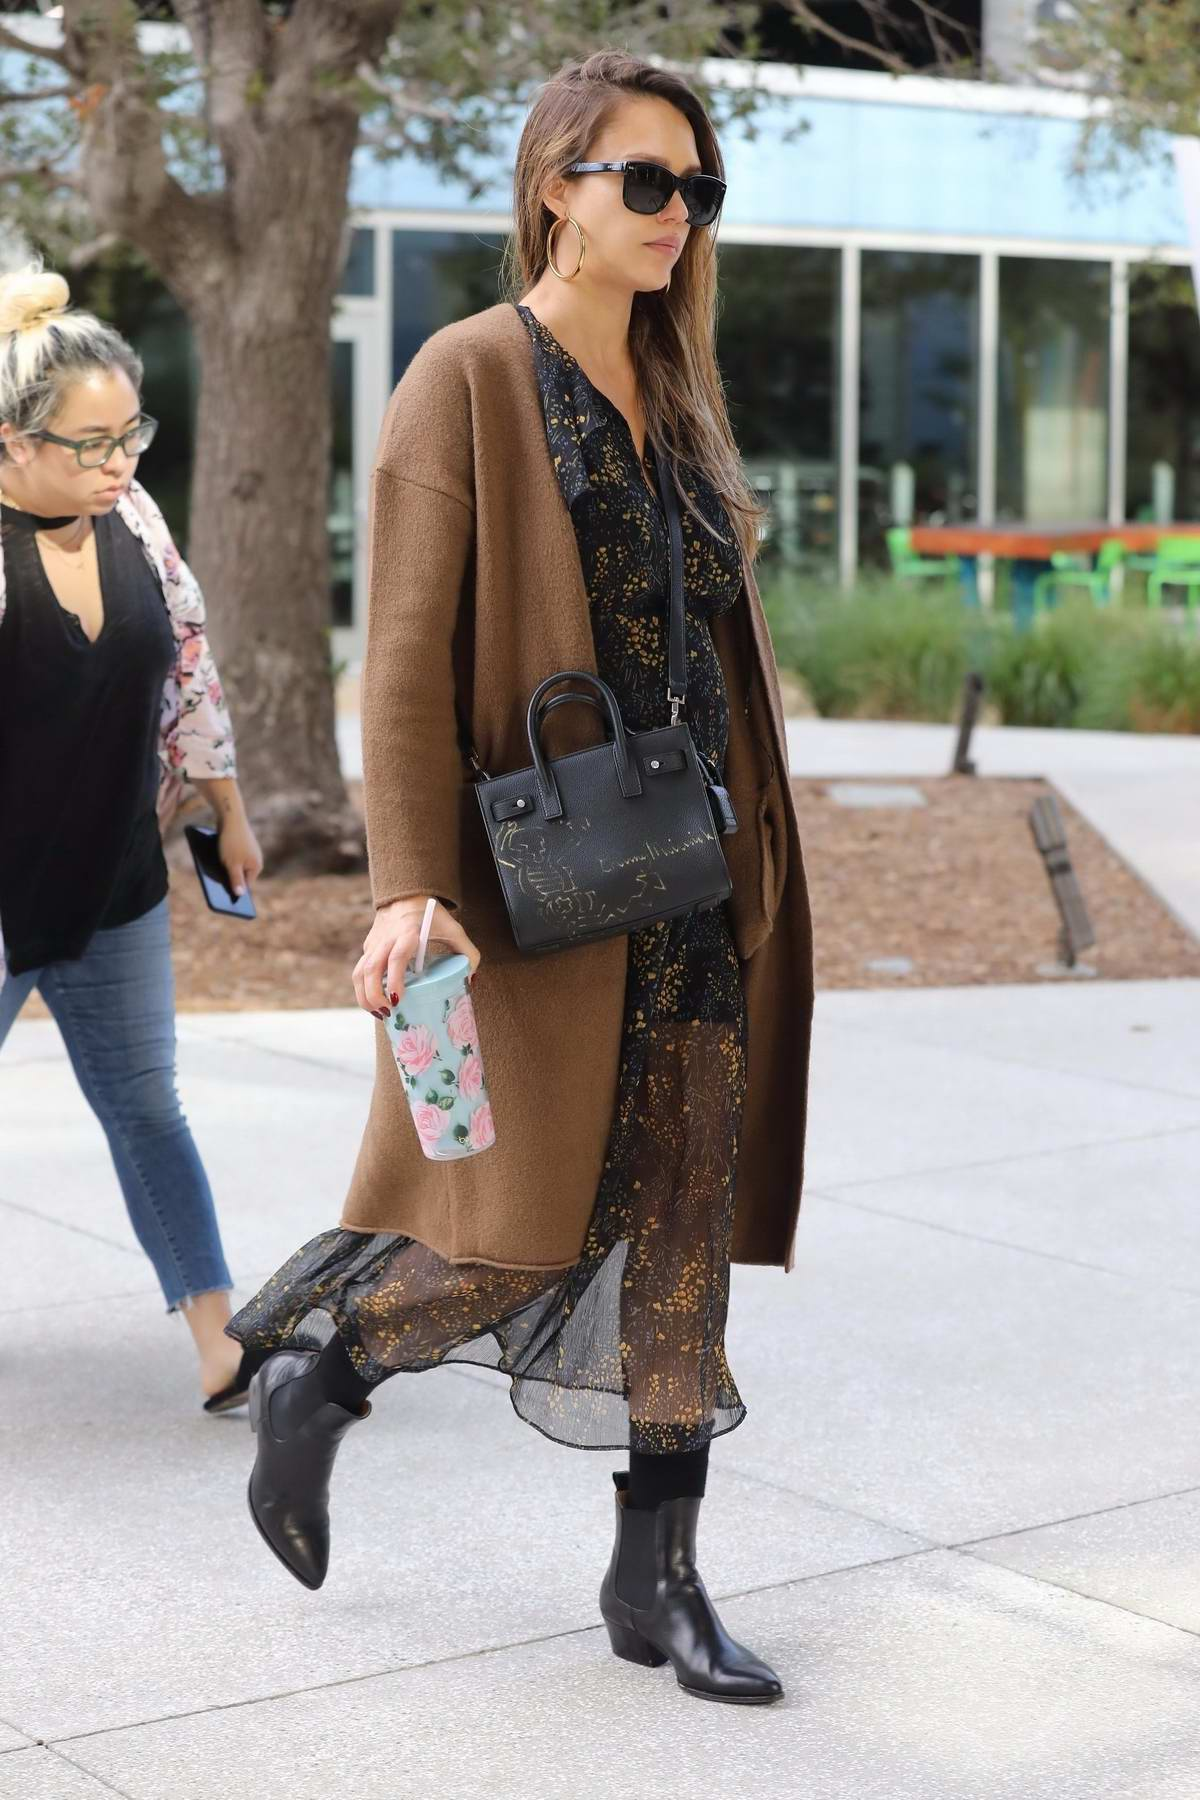 Jessica Alba in floral print dress arrives for work at the Honest Company in Los Angeles